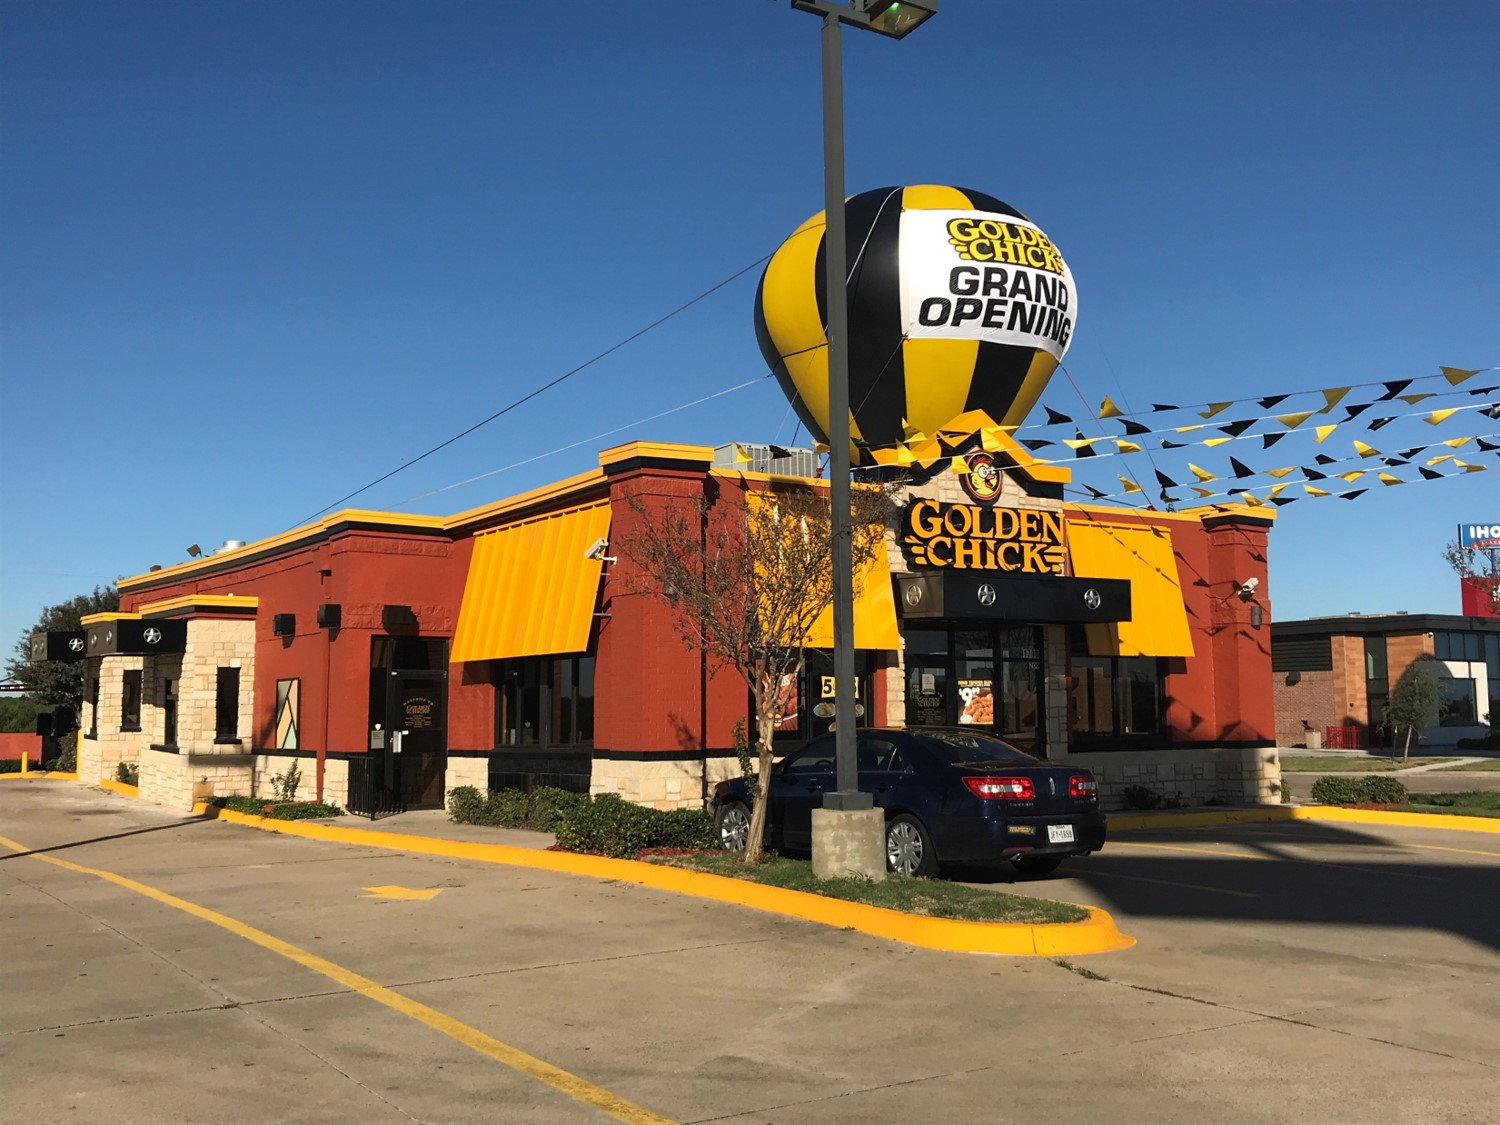 Golden Chick storefront.  Your local Golden Chick fast food restaurant in Terrell, Texas